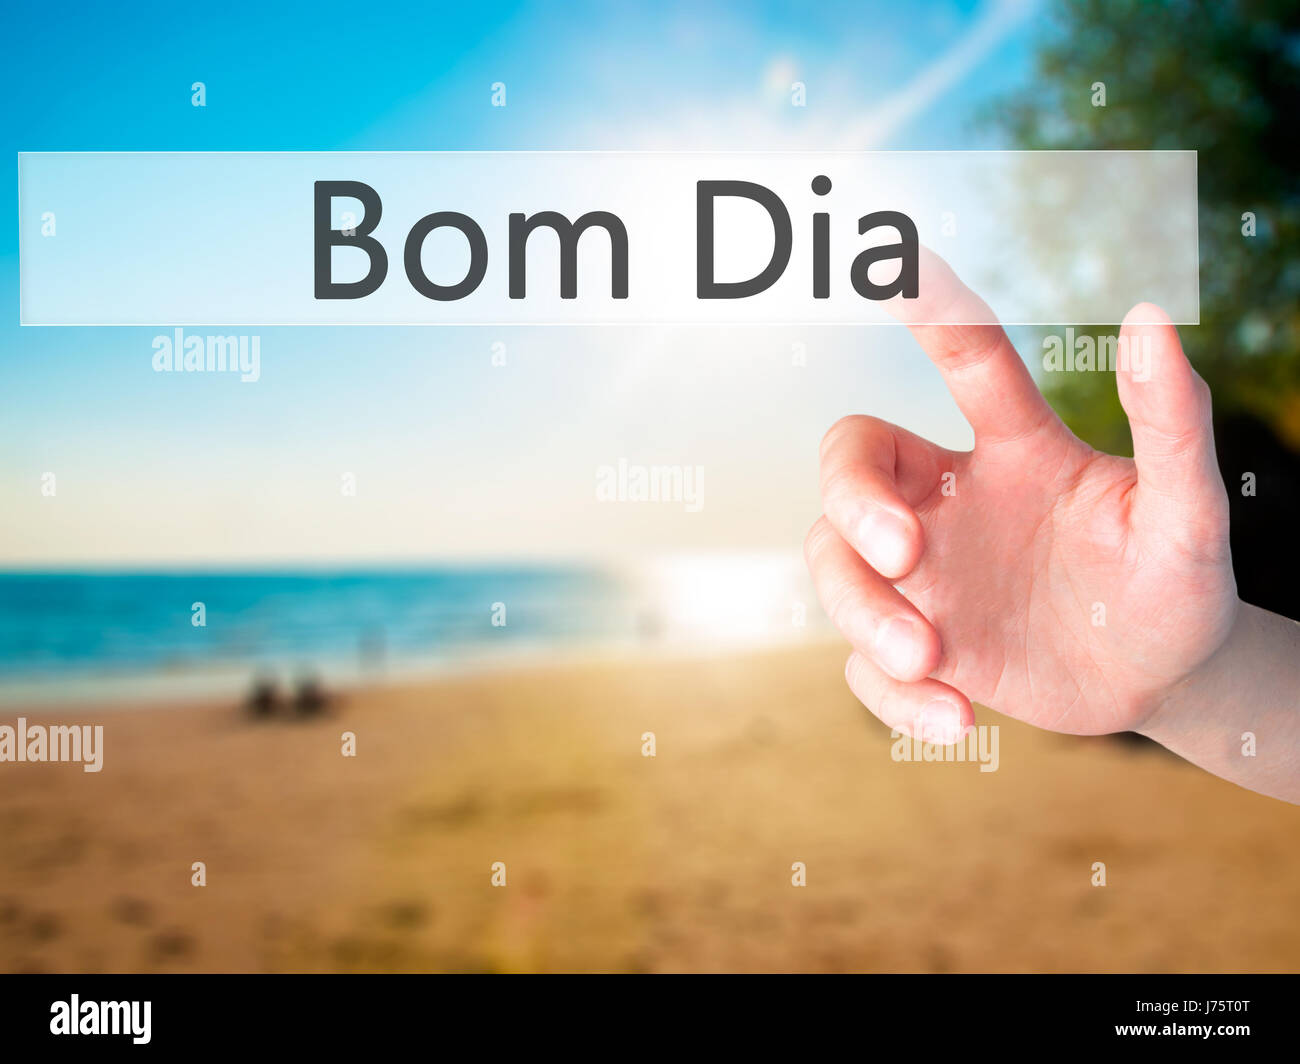 Bom Dia In Portuguese Good Morning Hand Pressing A Button On